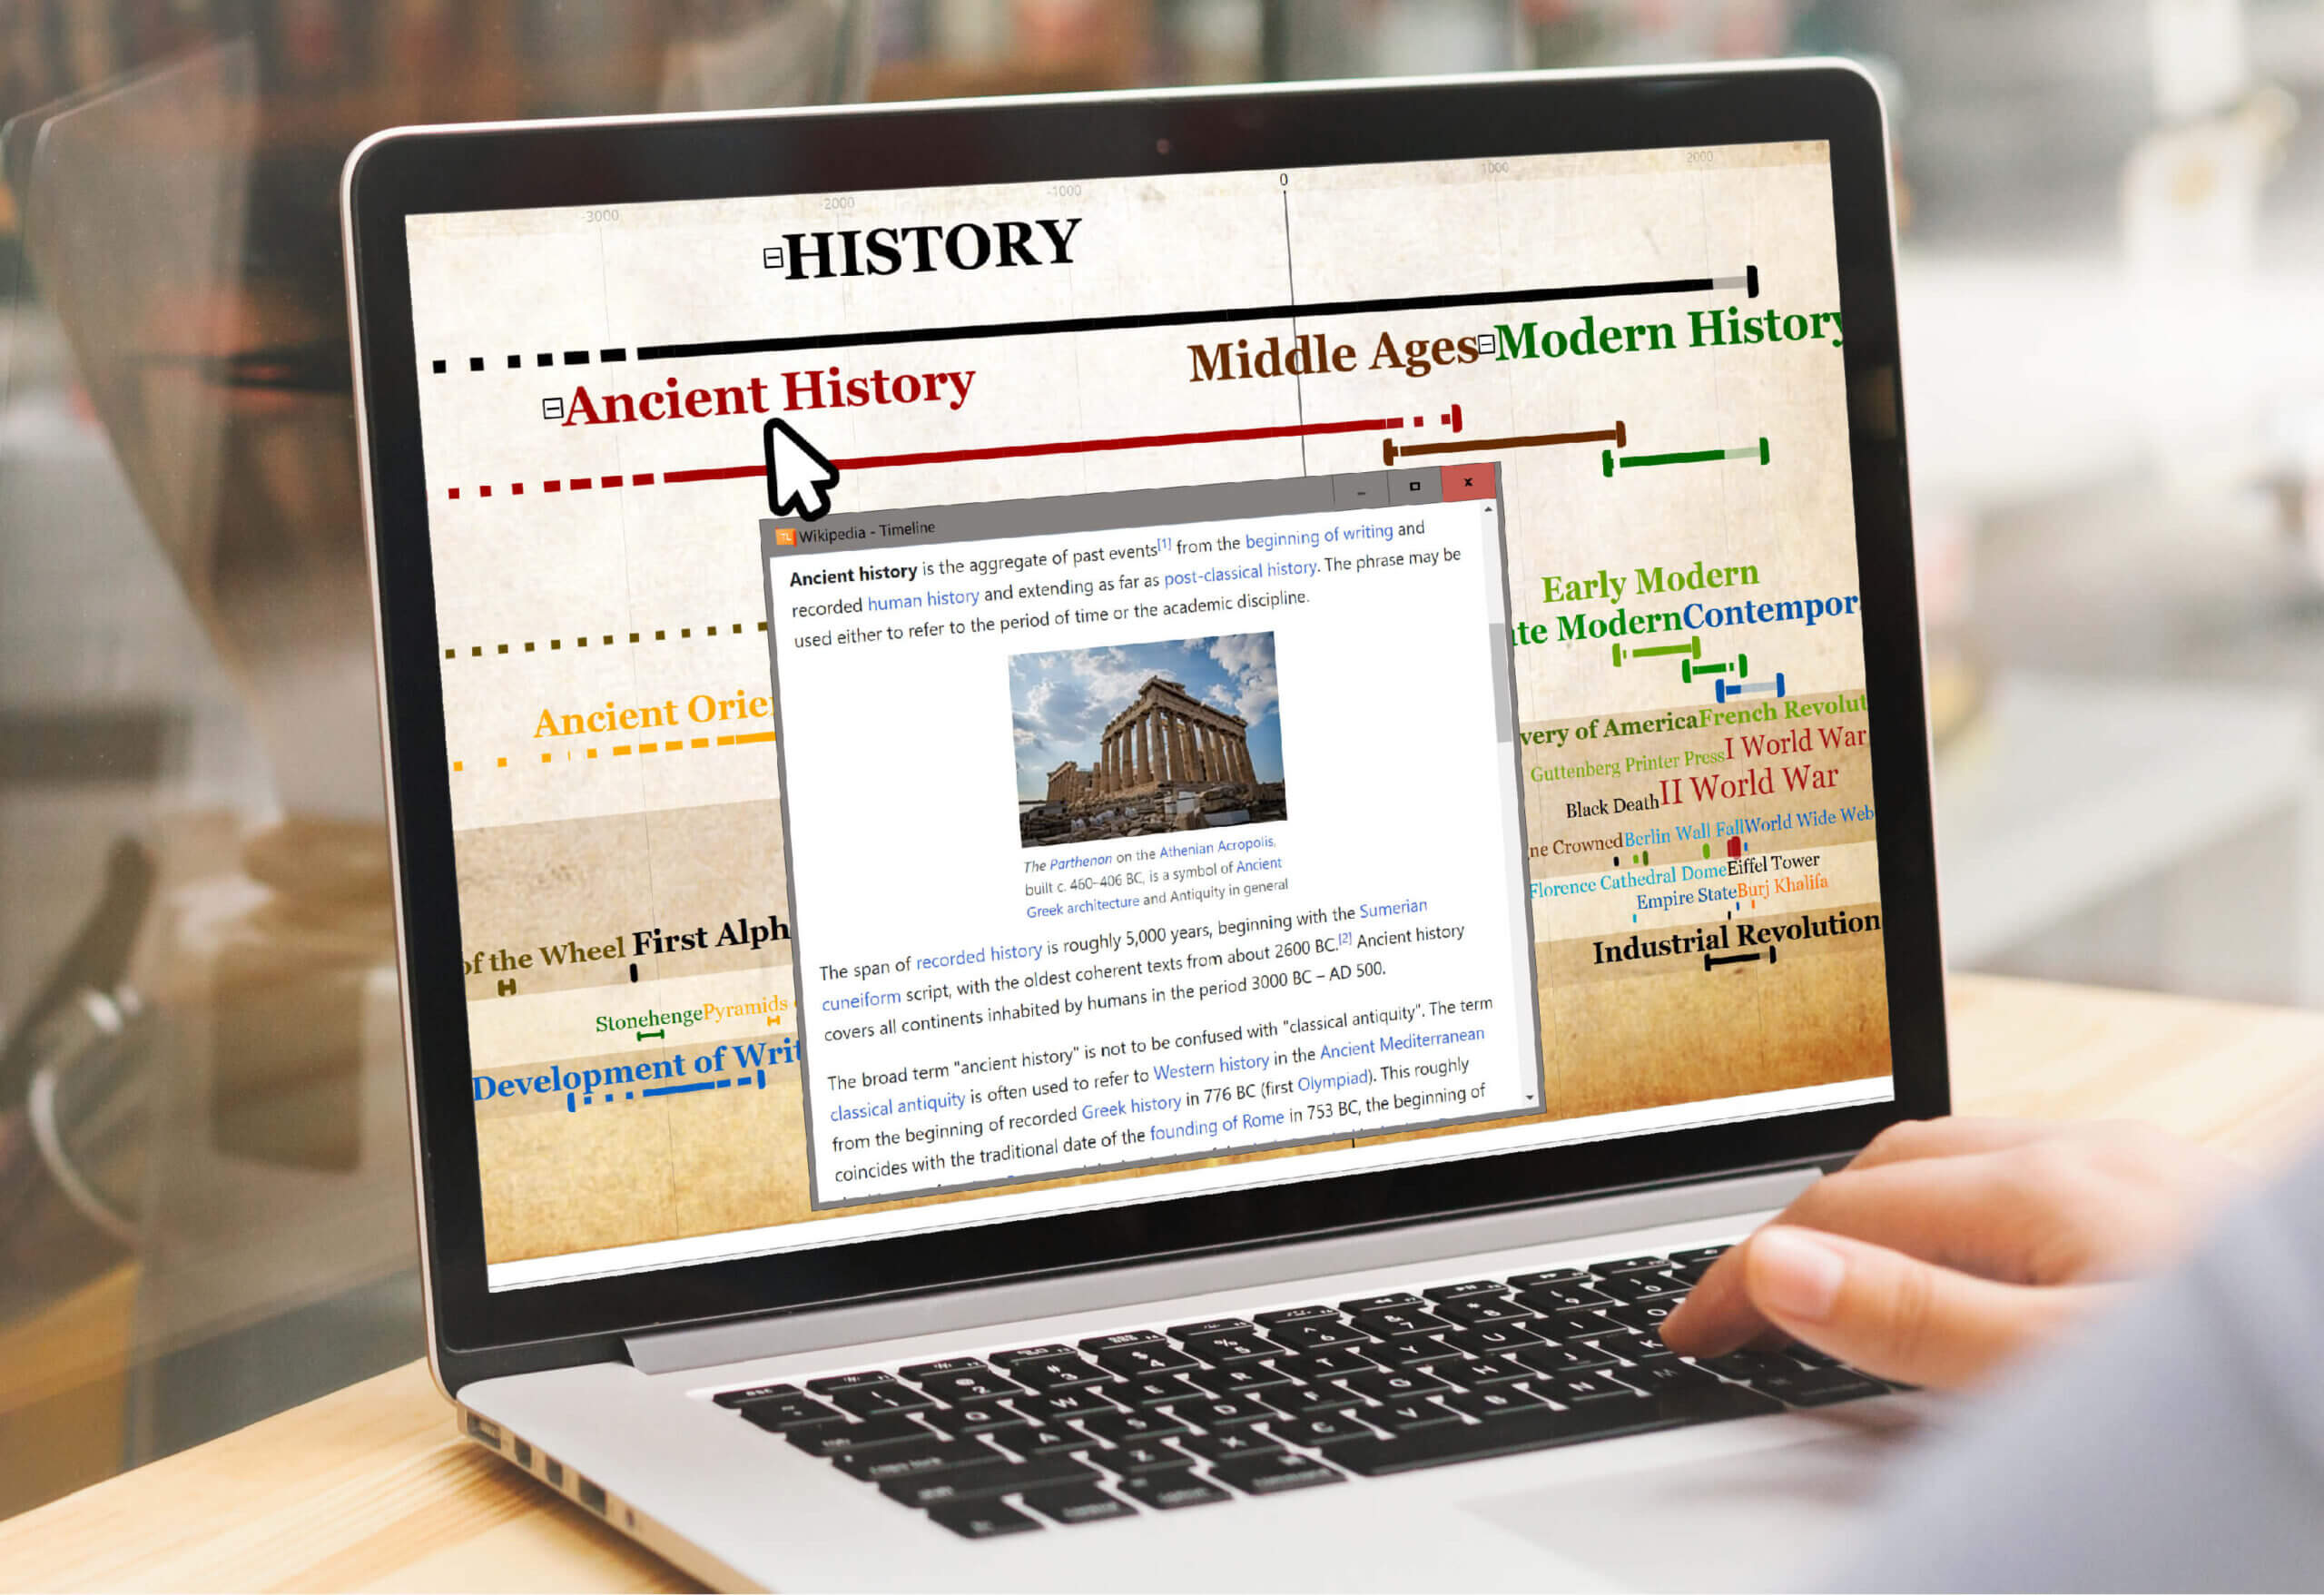 Built-in access to articles using Timeline Software